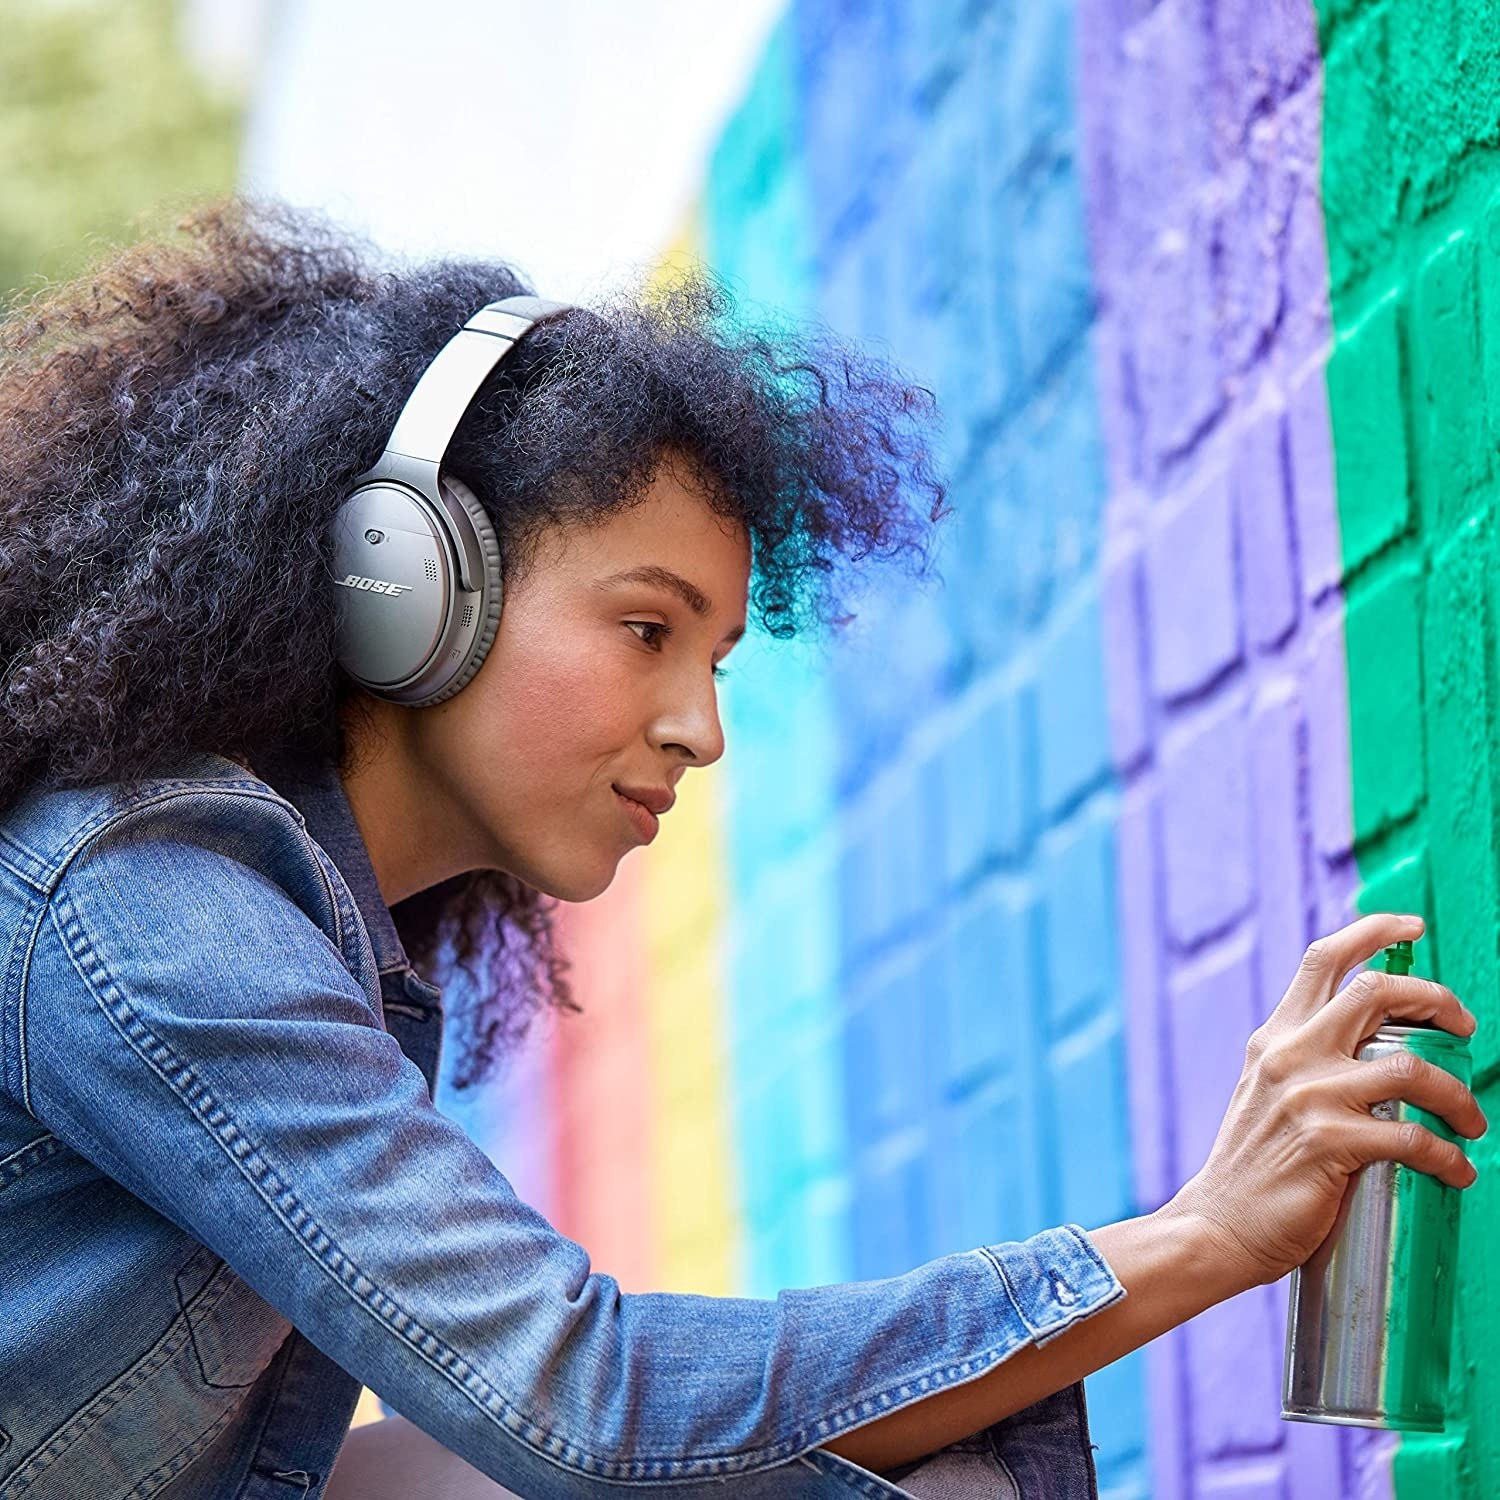 Artist spray painting a wall while wearing headphones